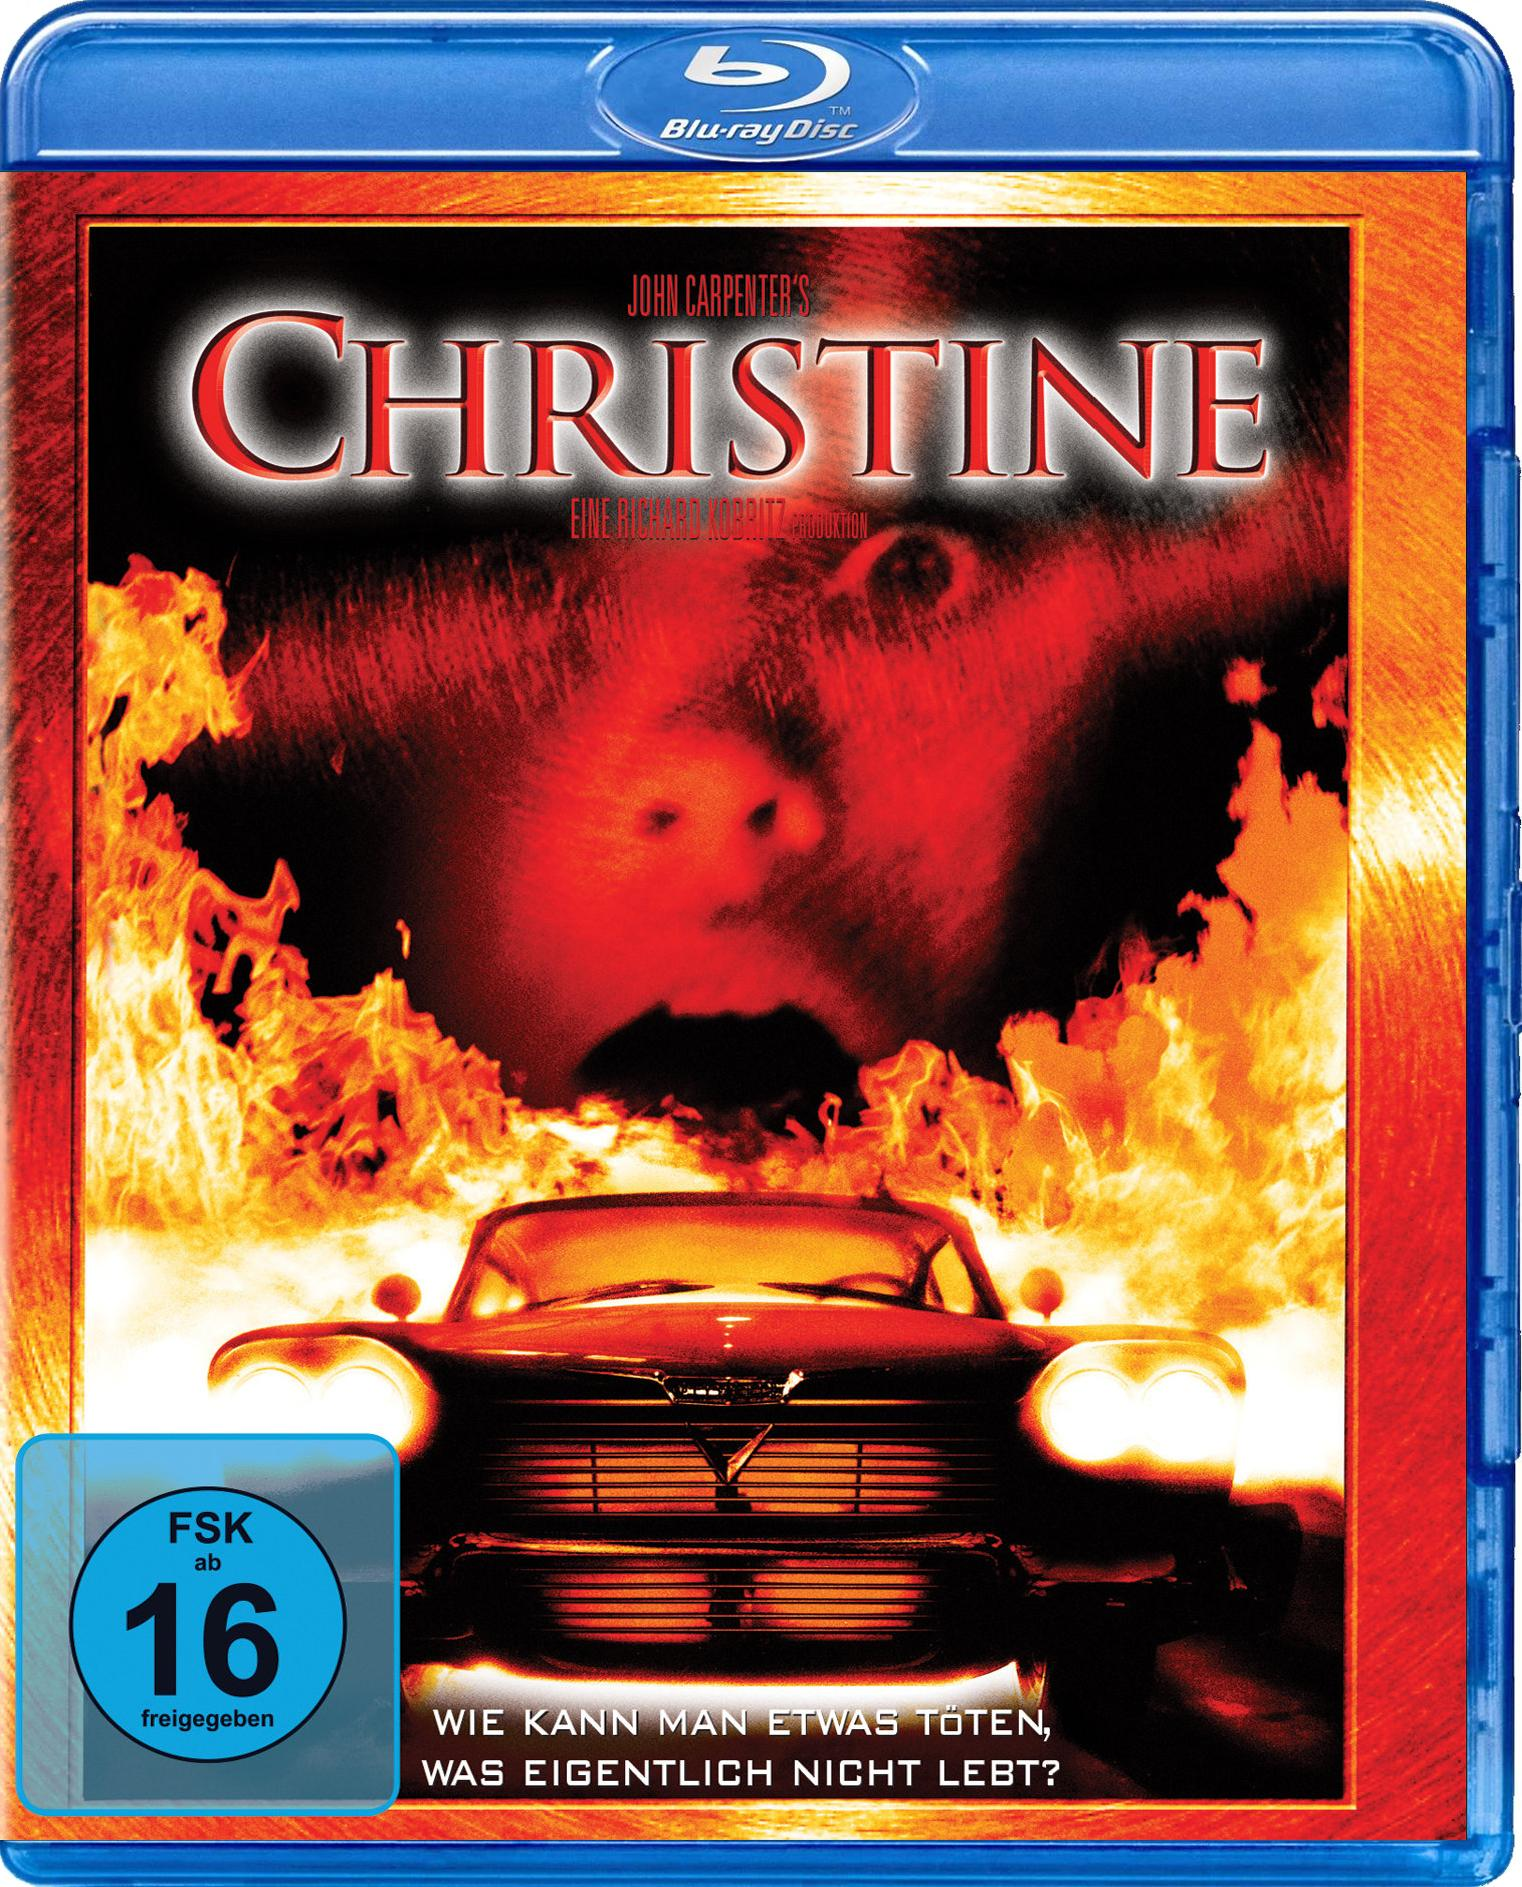 photo bluray 15 [News] Blu ray, les immanquables : octobre 2014